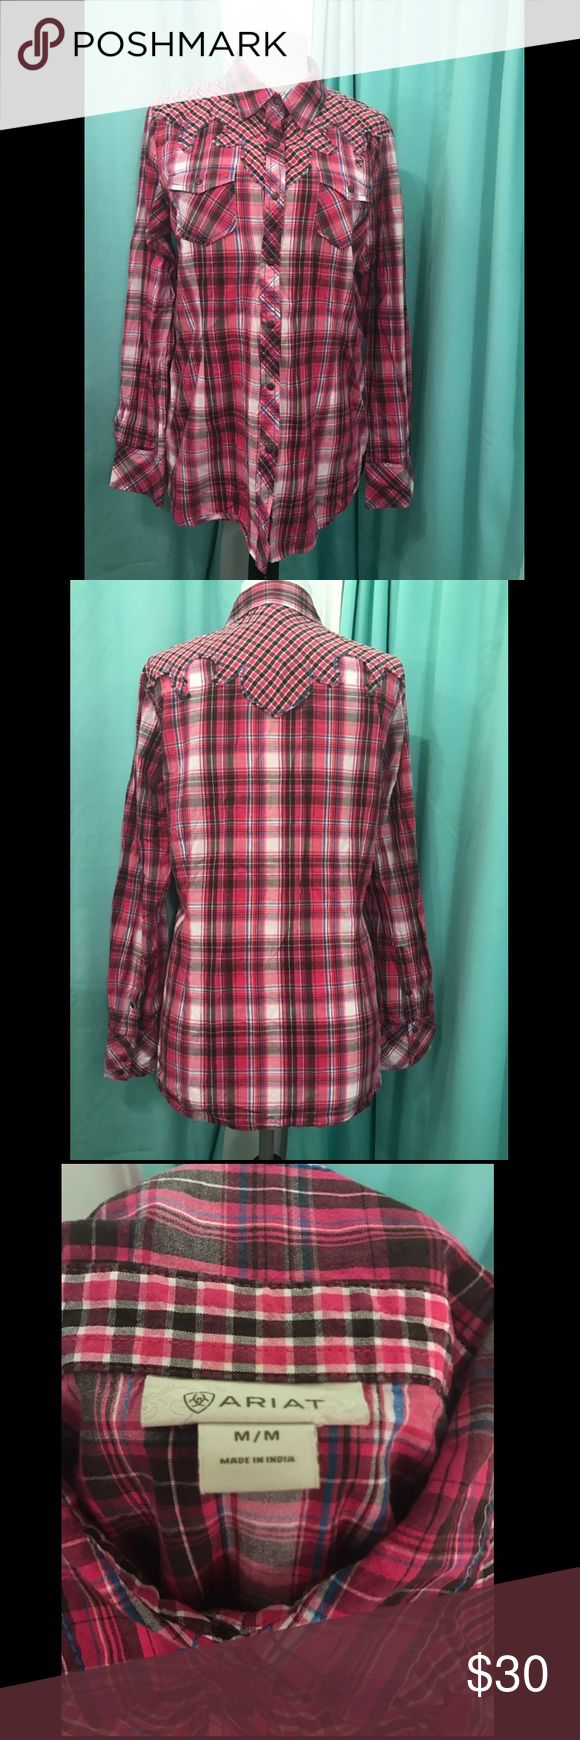 Ariat Pink flannel shirt Ariat pink flannel shirt, snap button up. Excellent condition. Smoke free, pet free. Ariat Tops Button Down Shirts